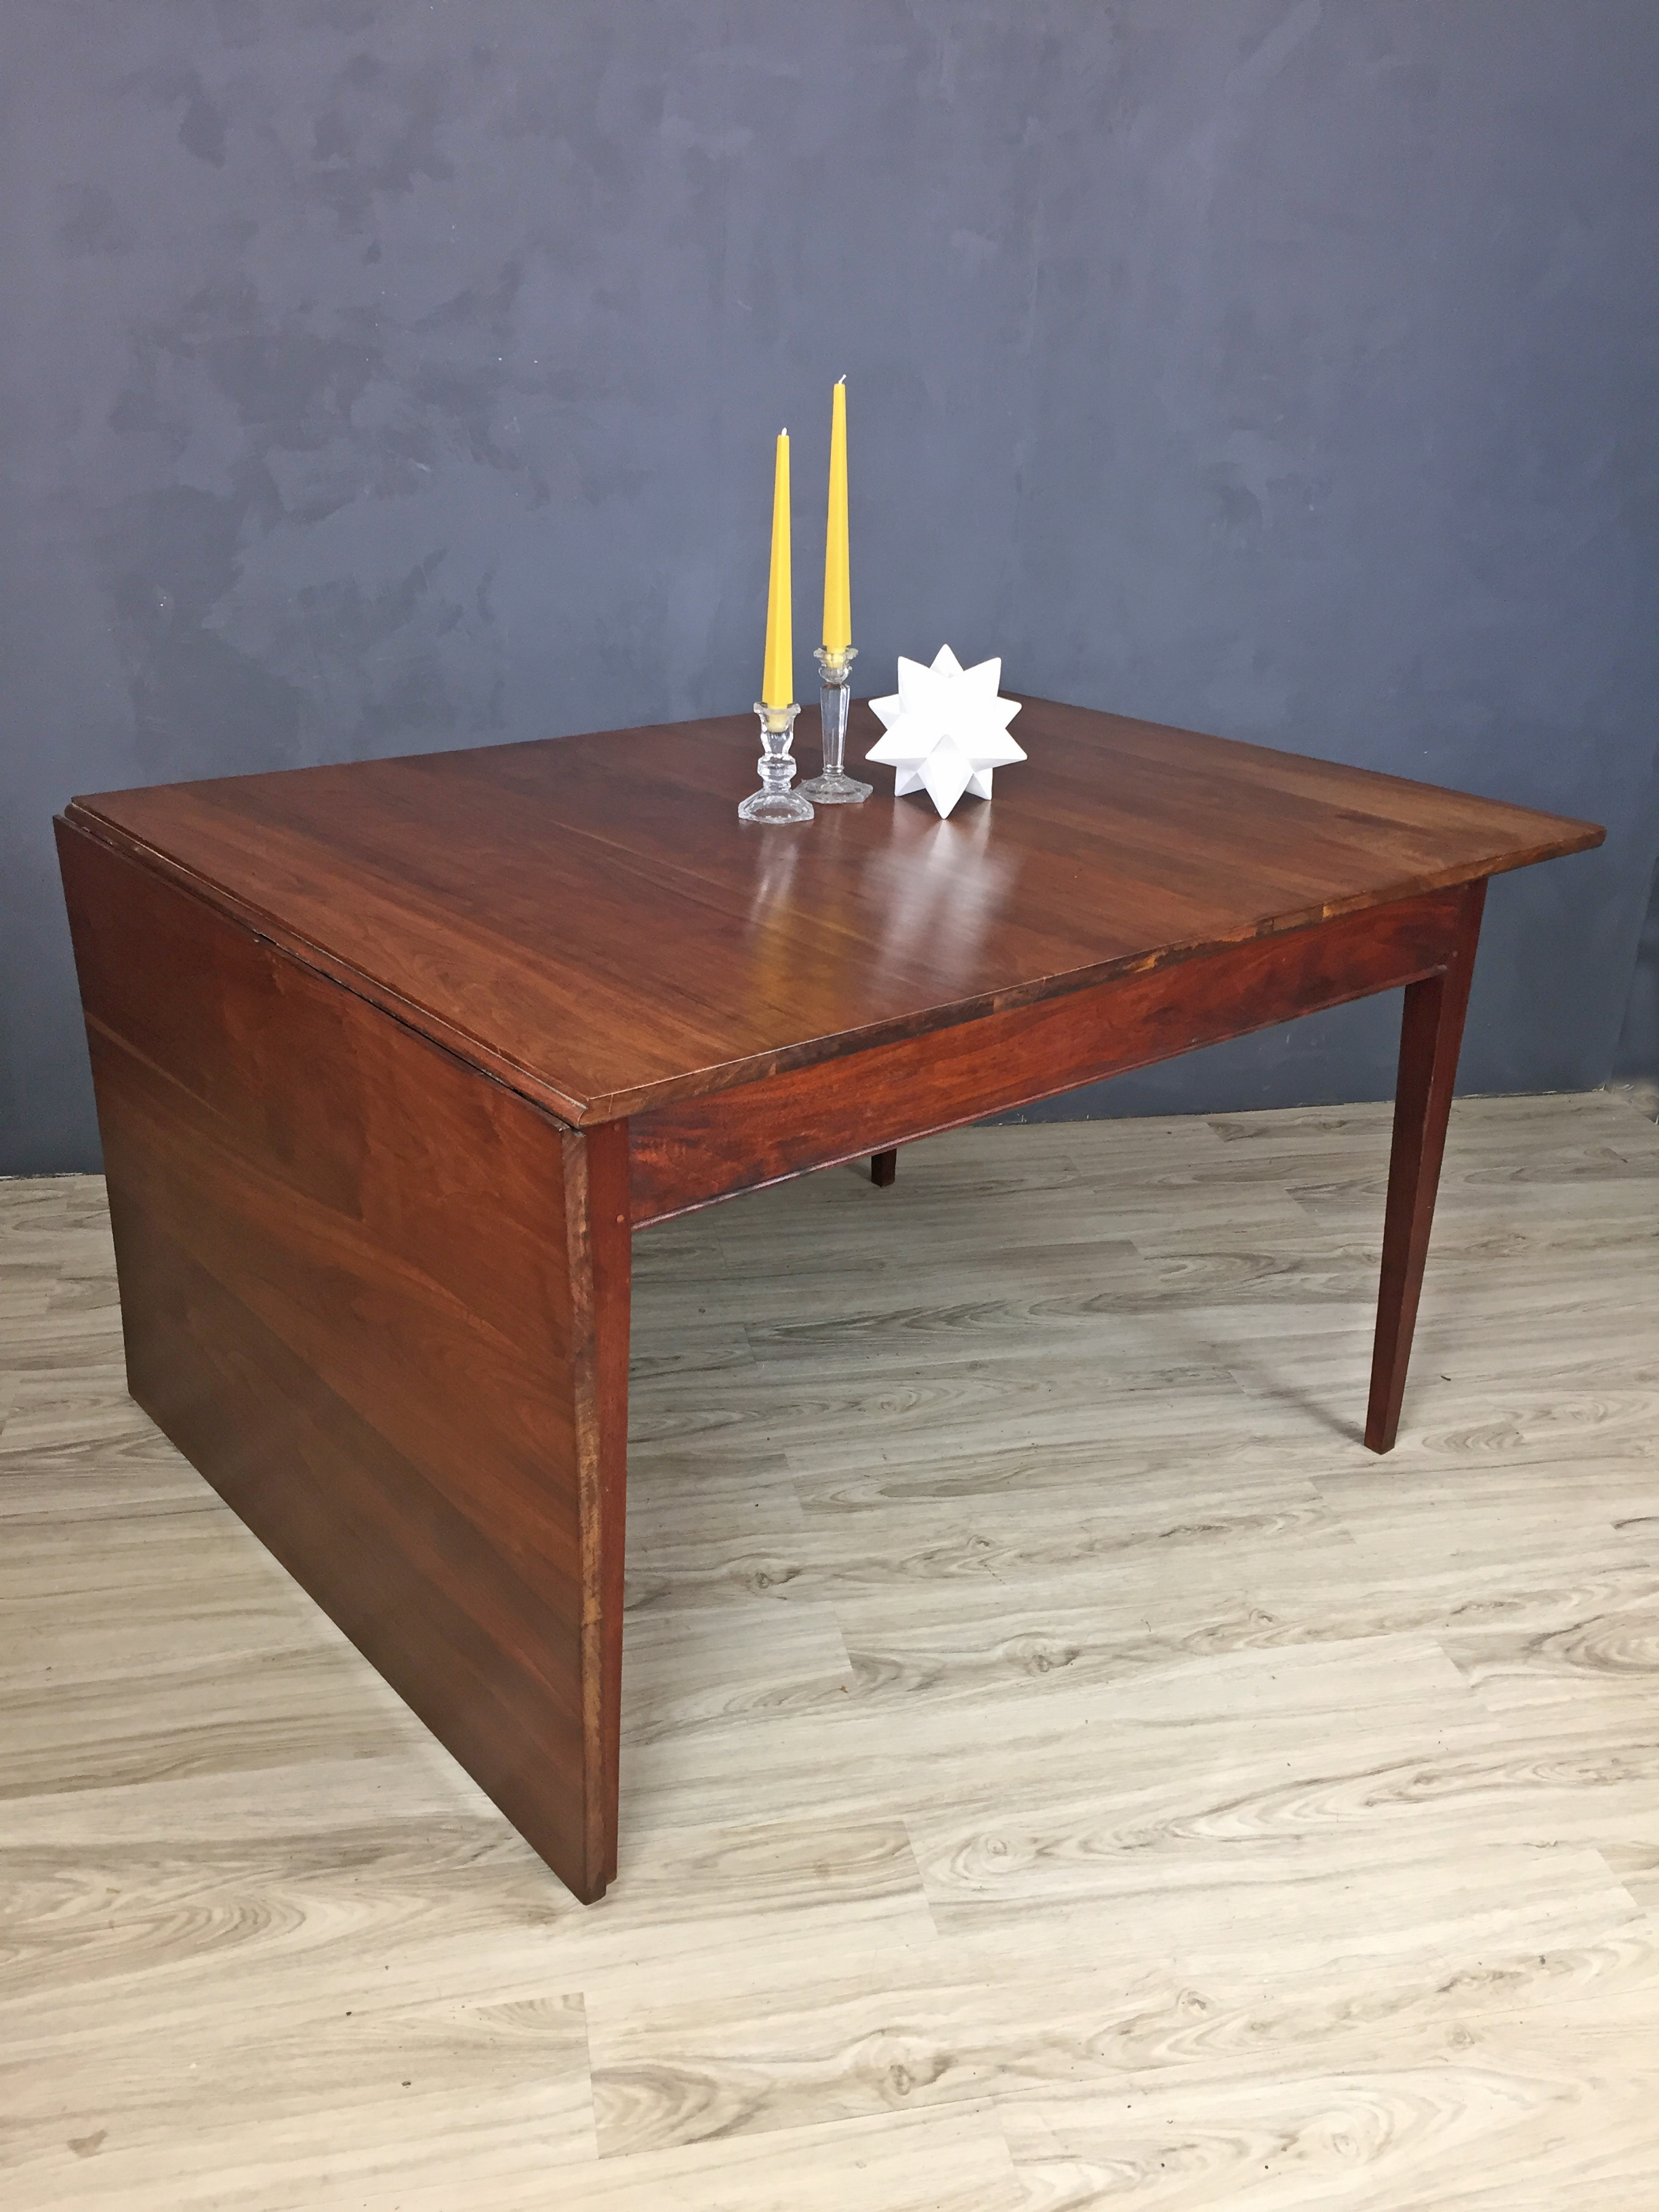 SALE - Walnut Drop-Leaf Dining Table